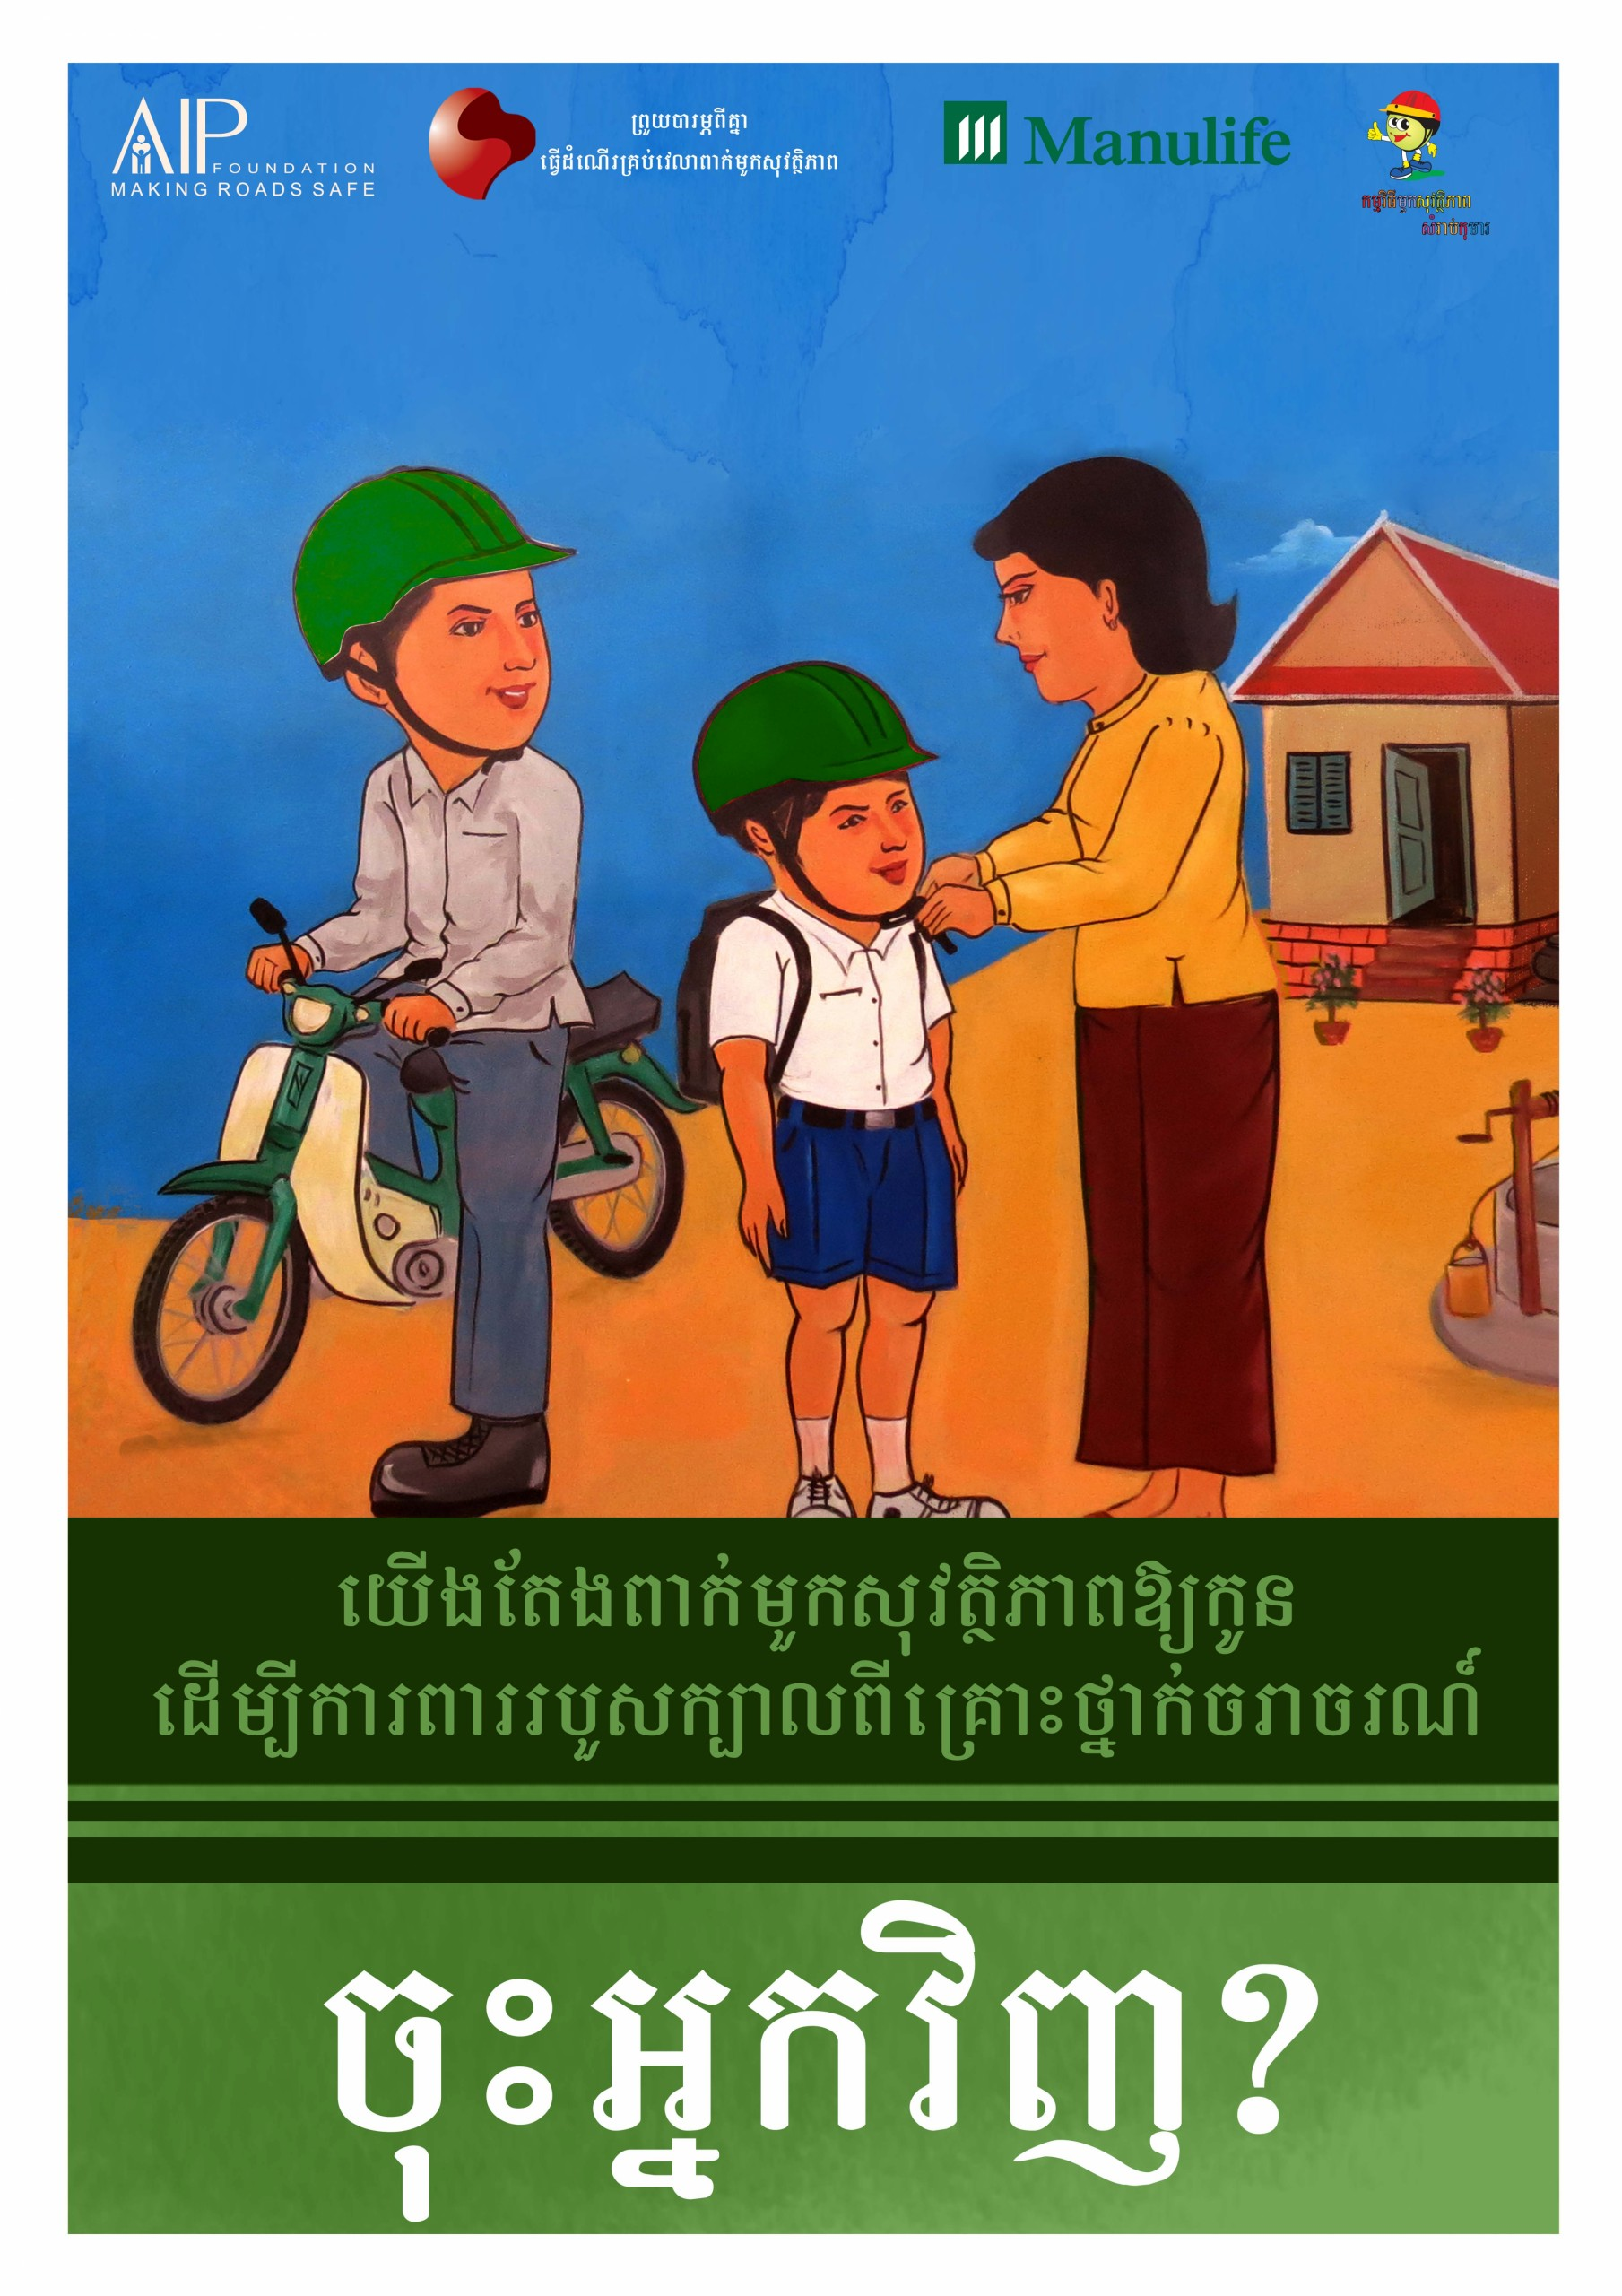 Helmet use poster supported by Manulife Cambodia Plc.